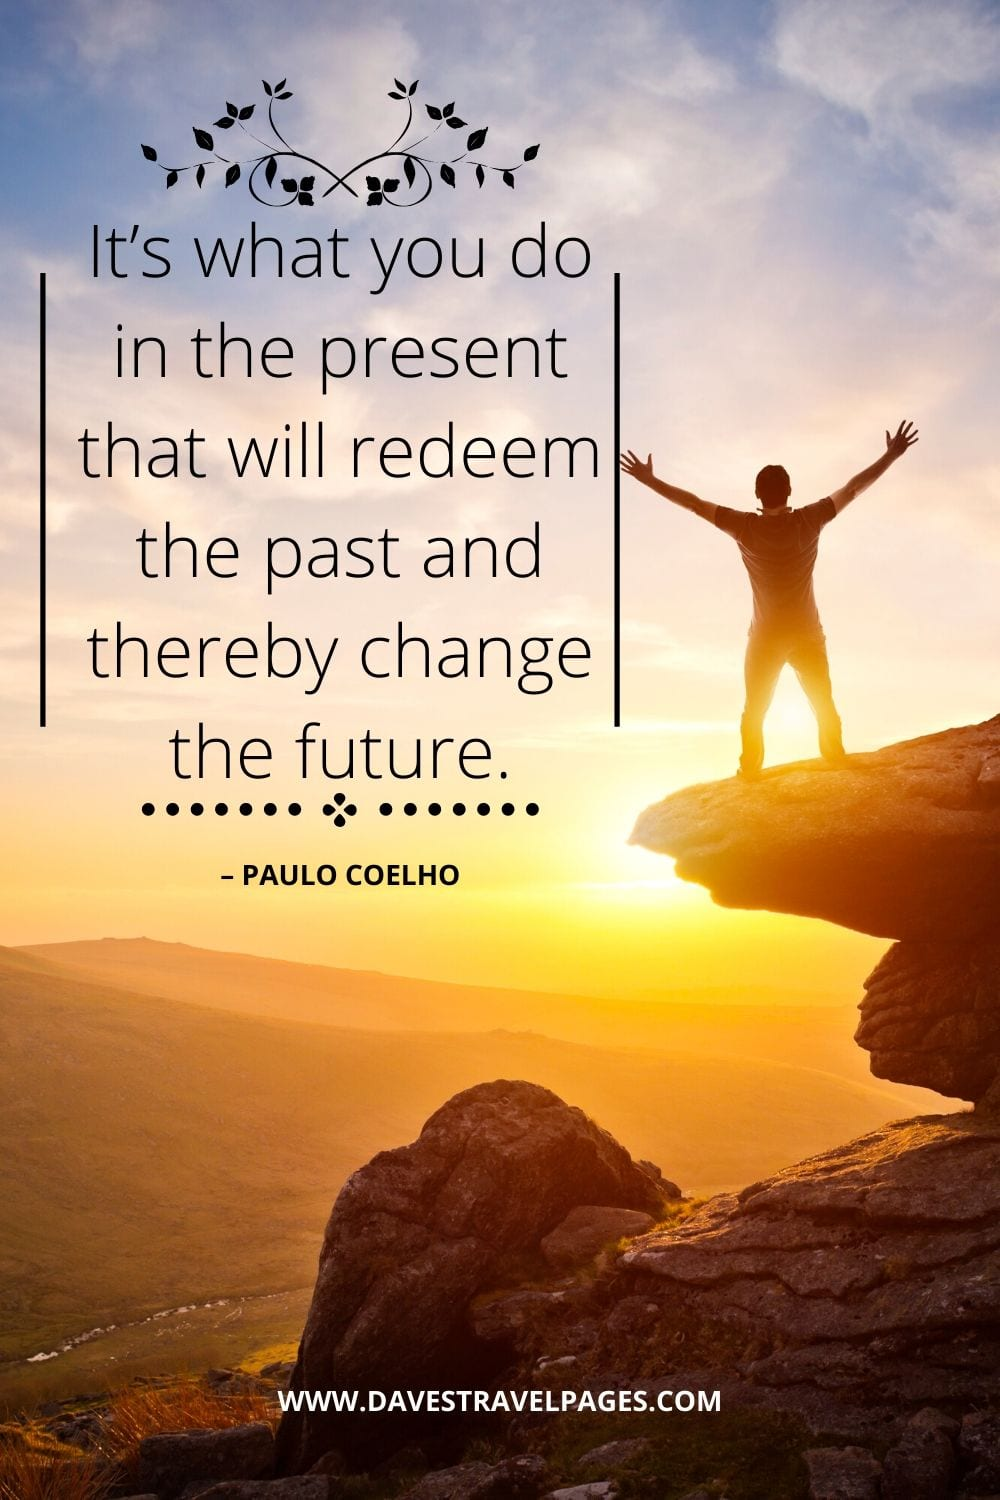 """It's what you do in the present that will redeem the past and thereby change the future."" – Paulo Coelho"